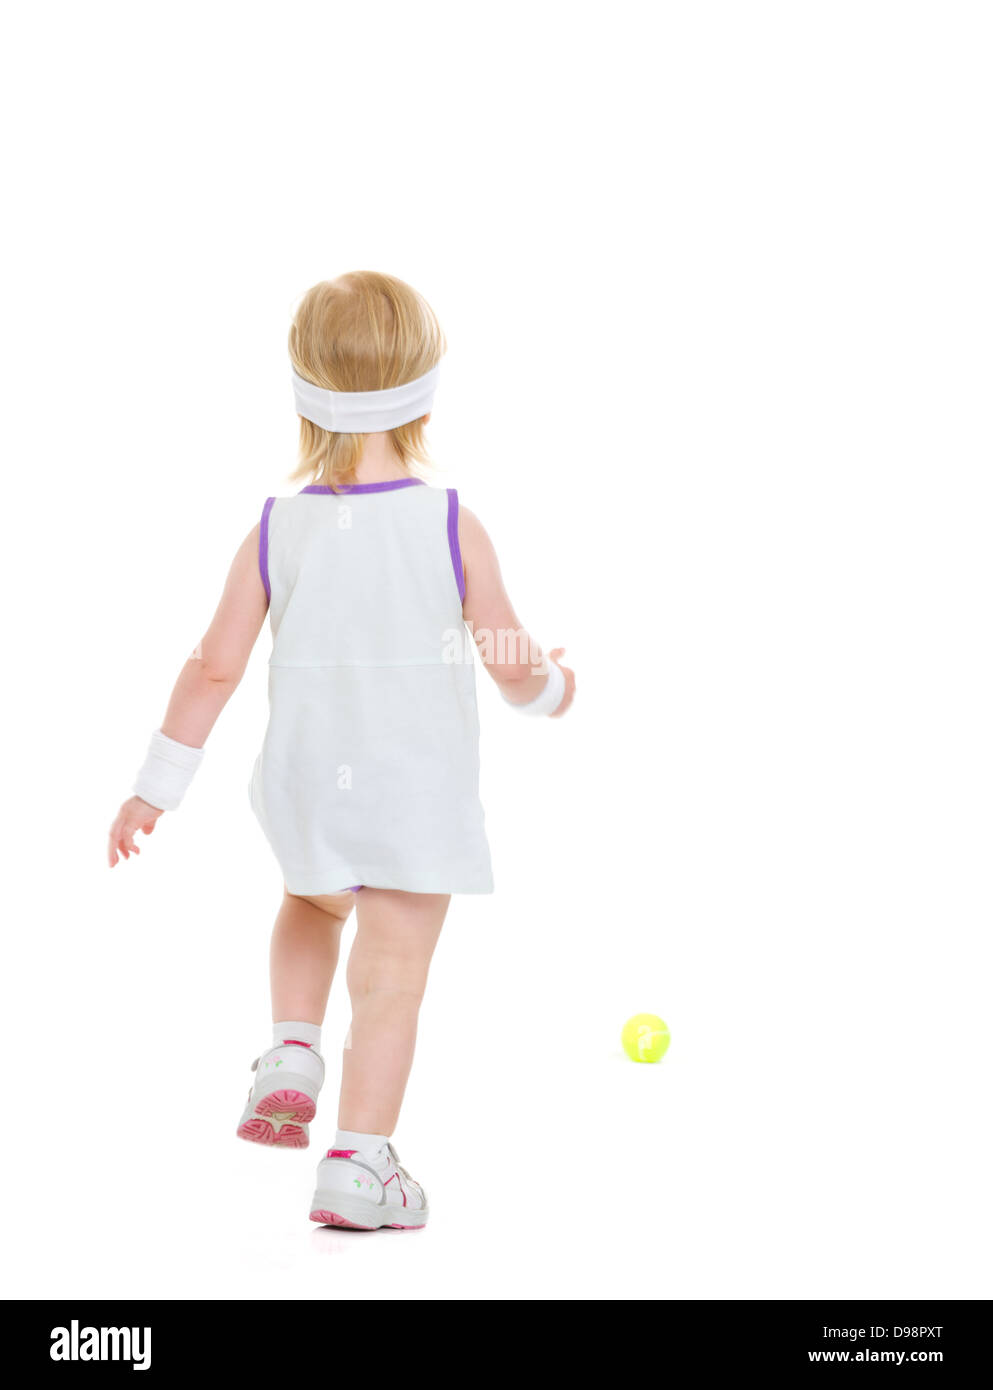 Baby running for tennis ball . rear view - Stock Image